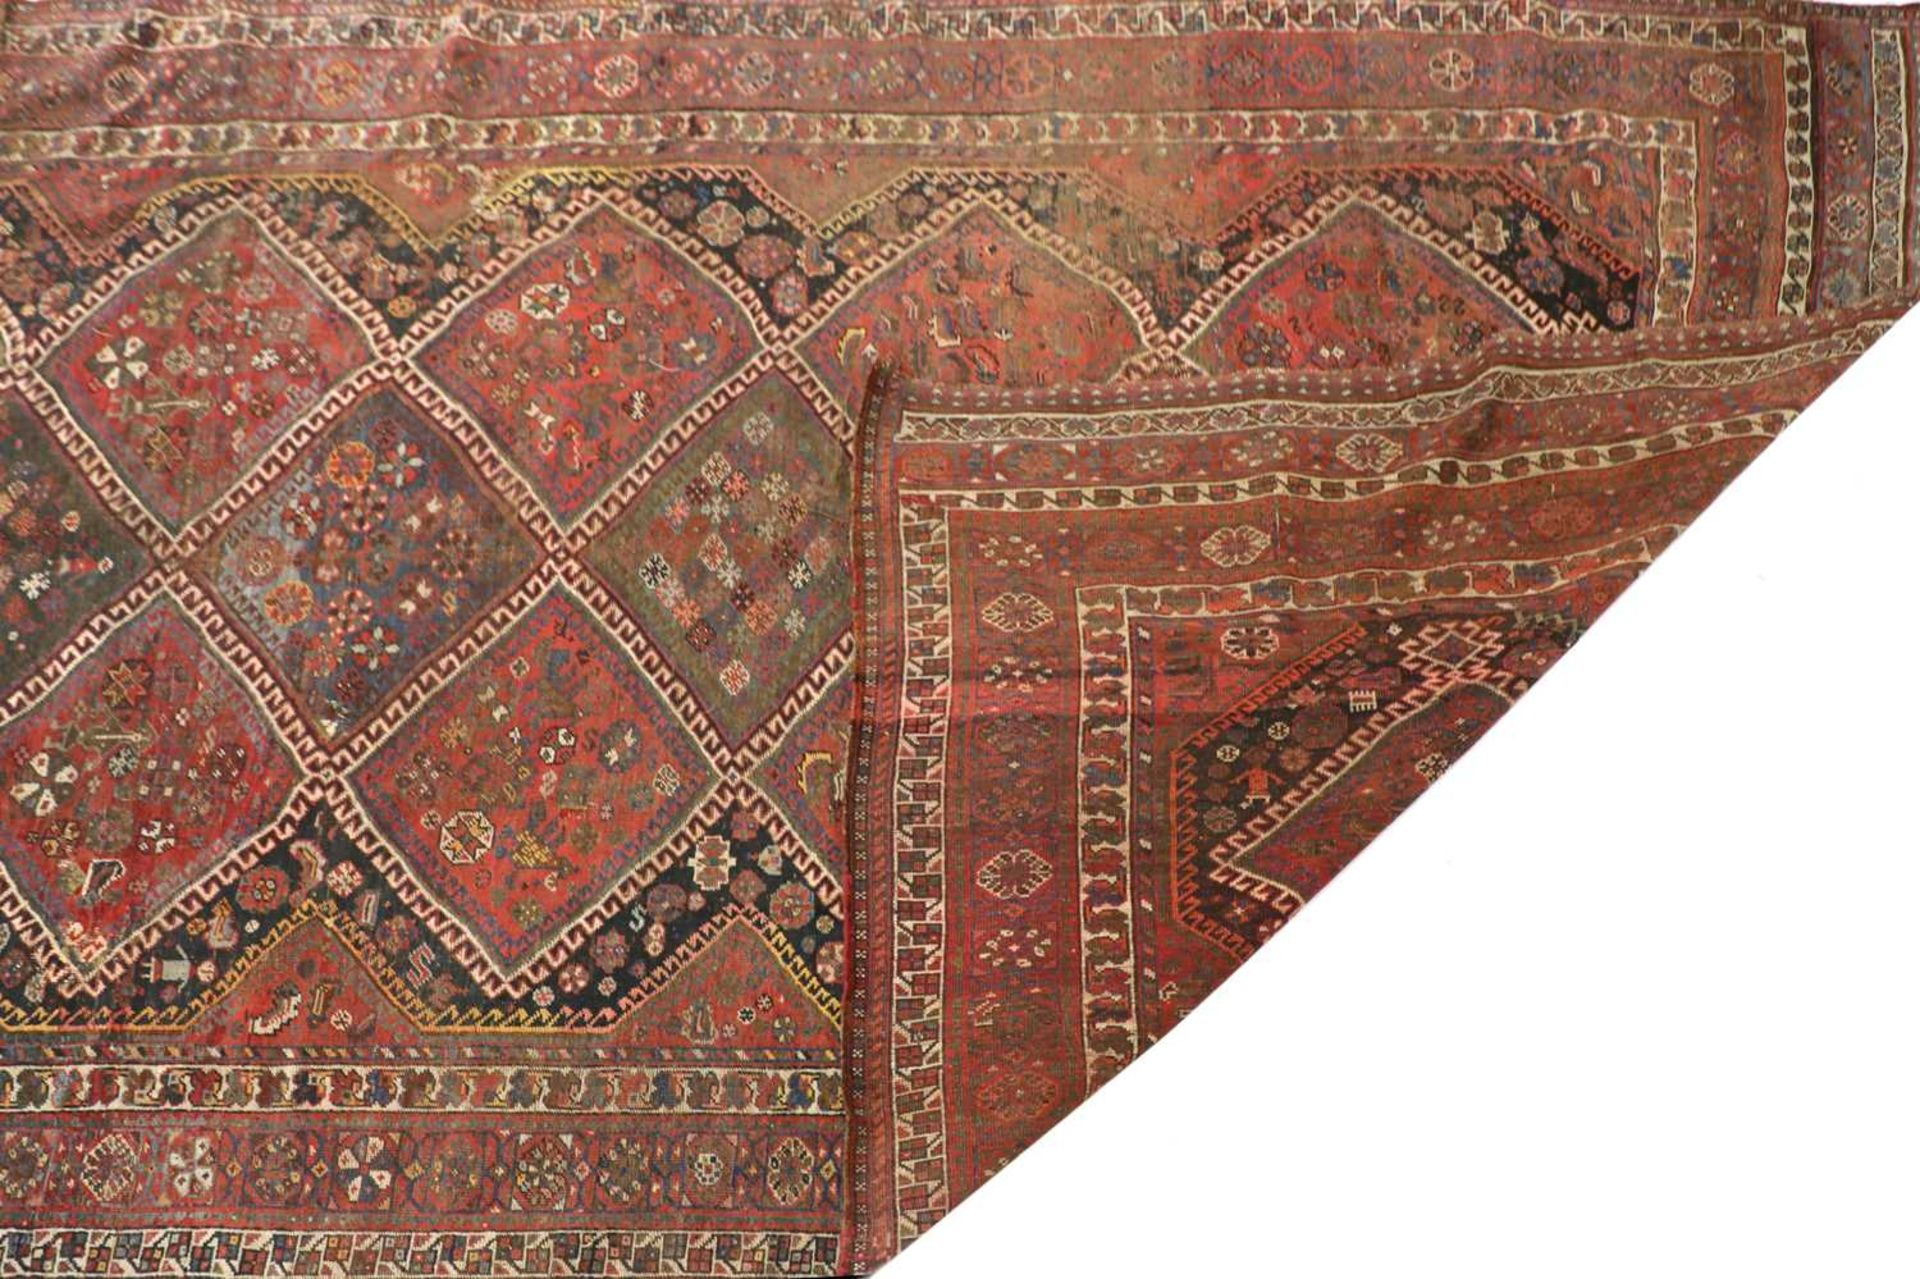 A red ground Persian carpet, - Image 2 of 2